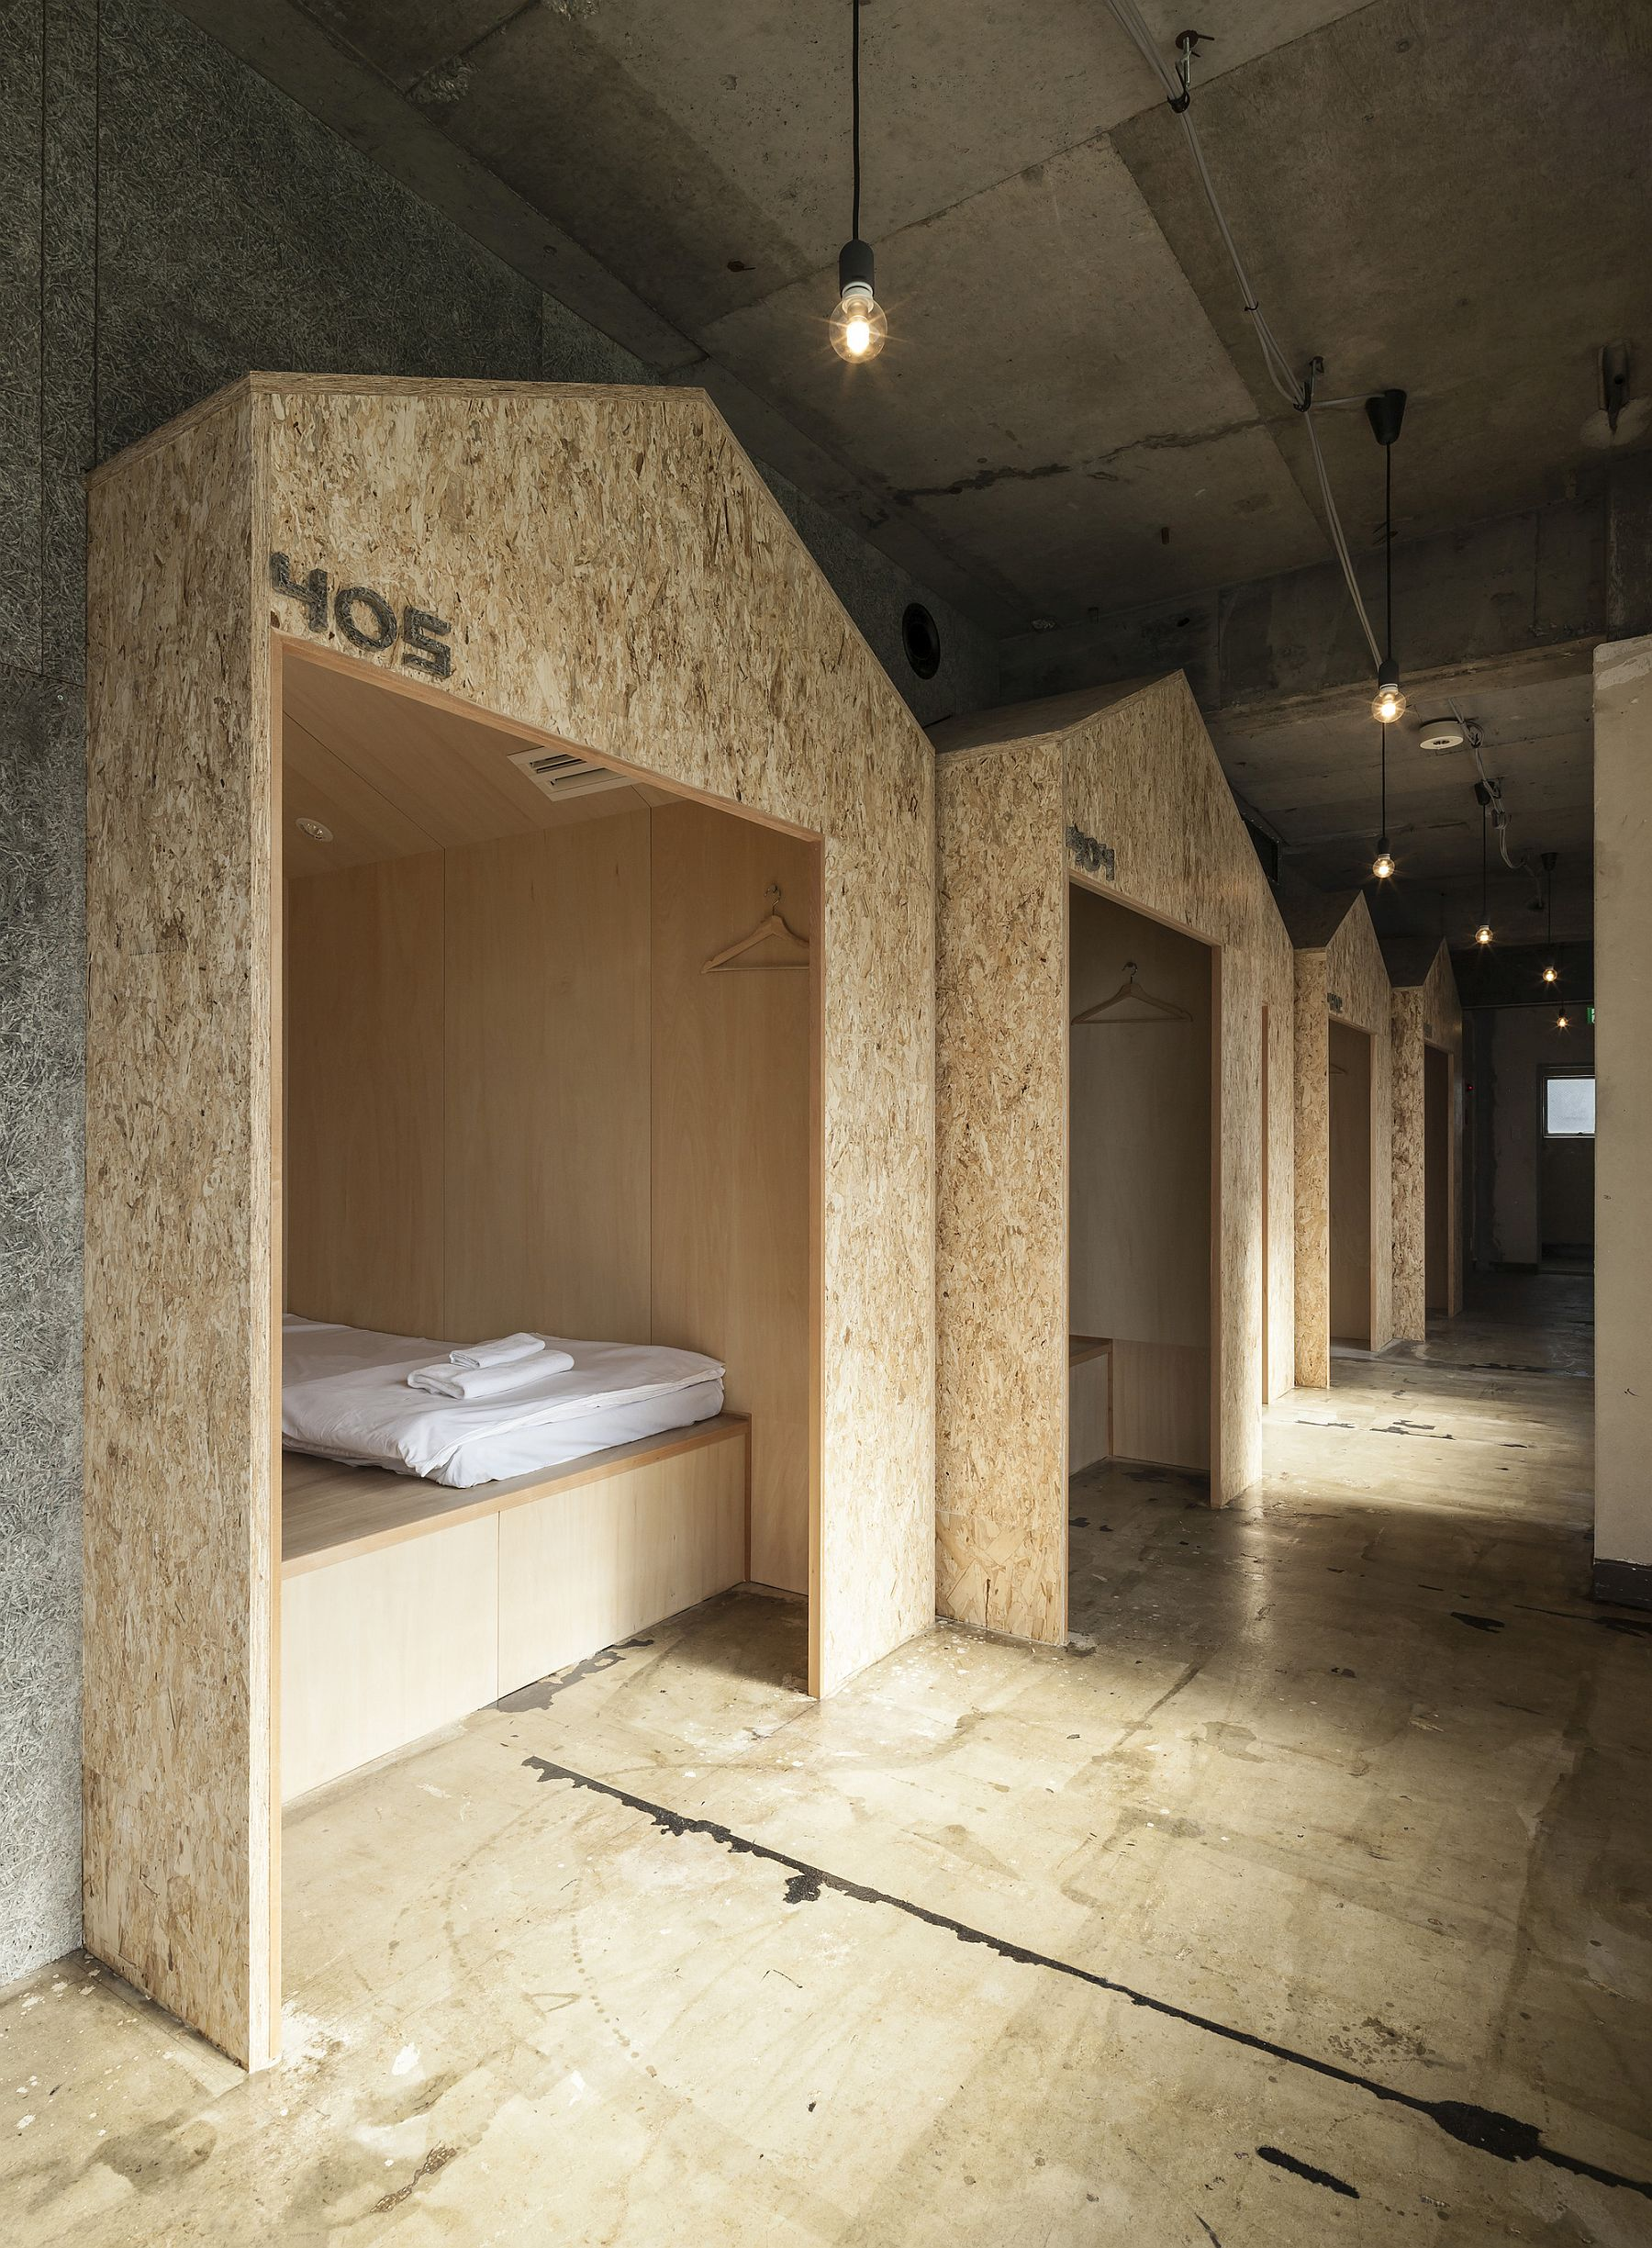 Space-savvy sleeping huts inside the Tokyo hostel